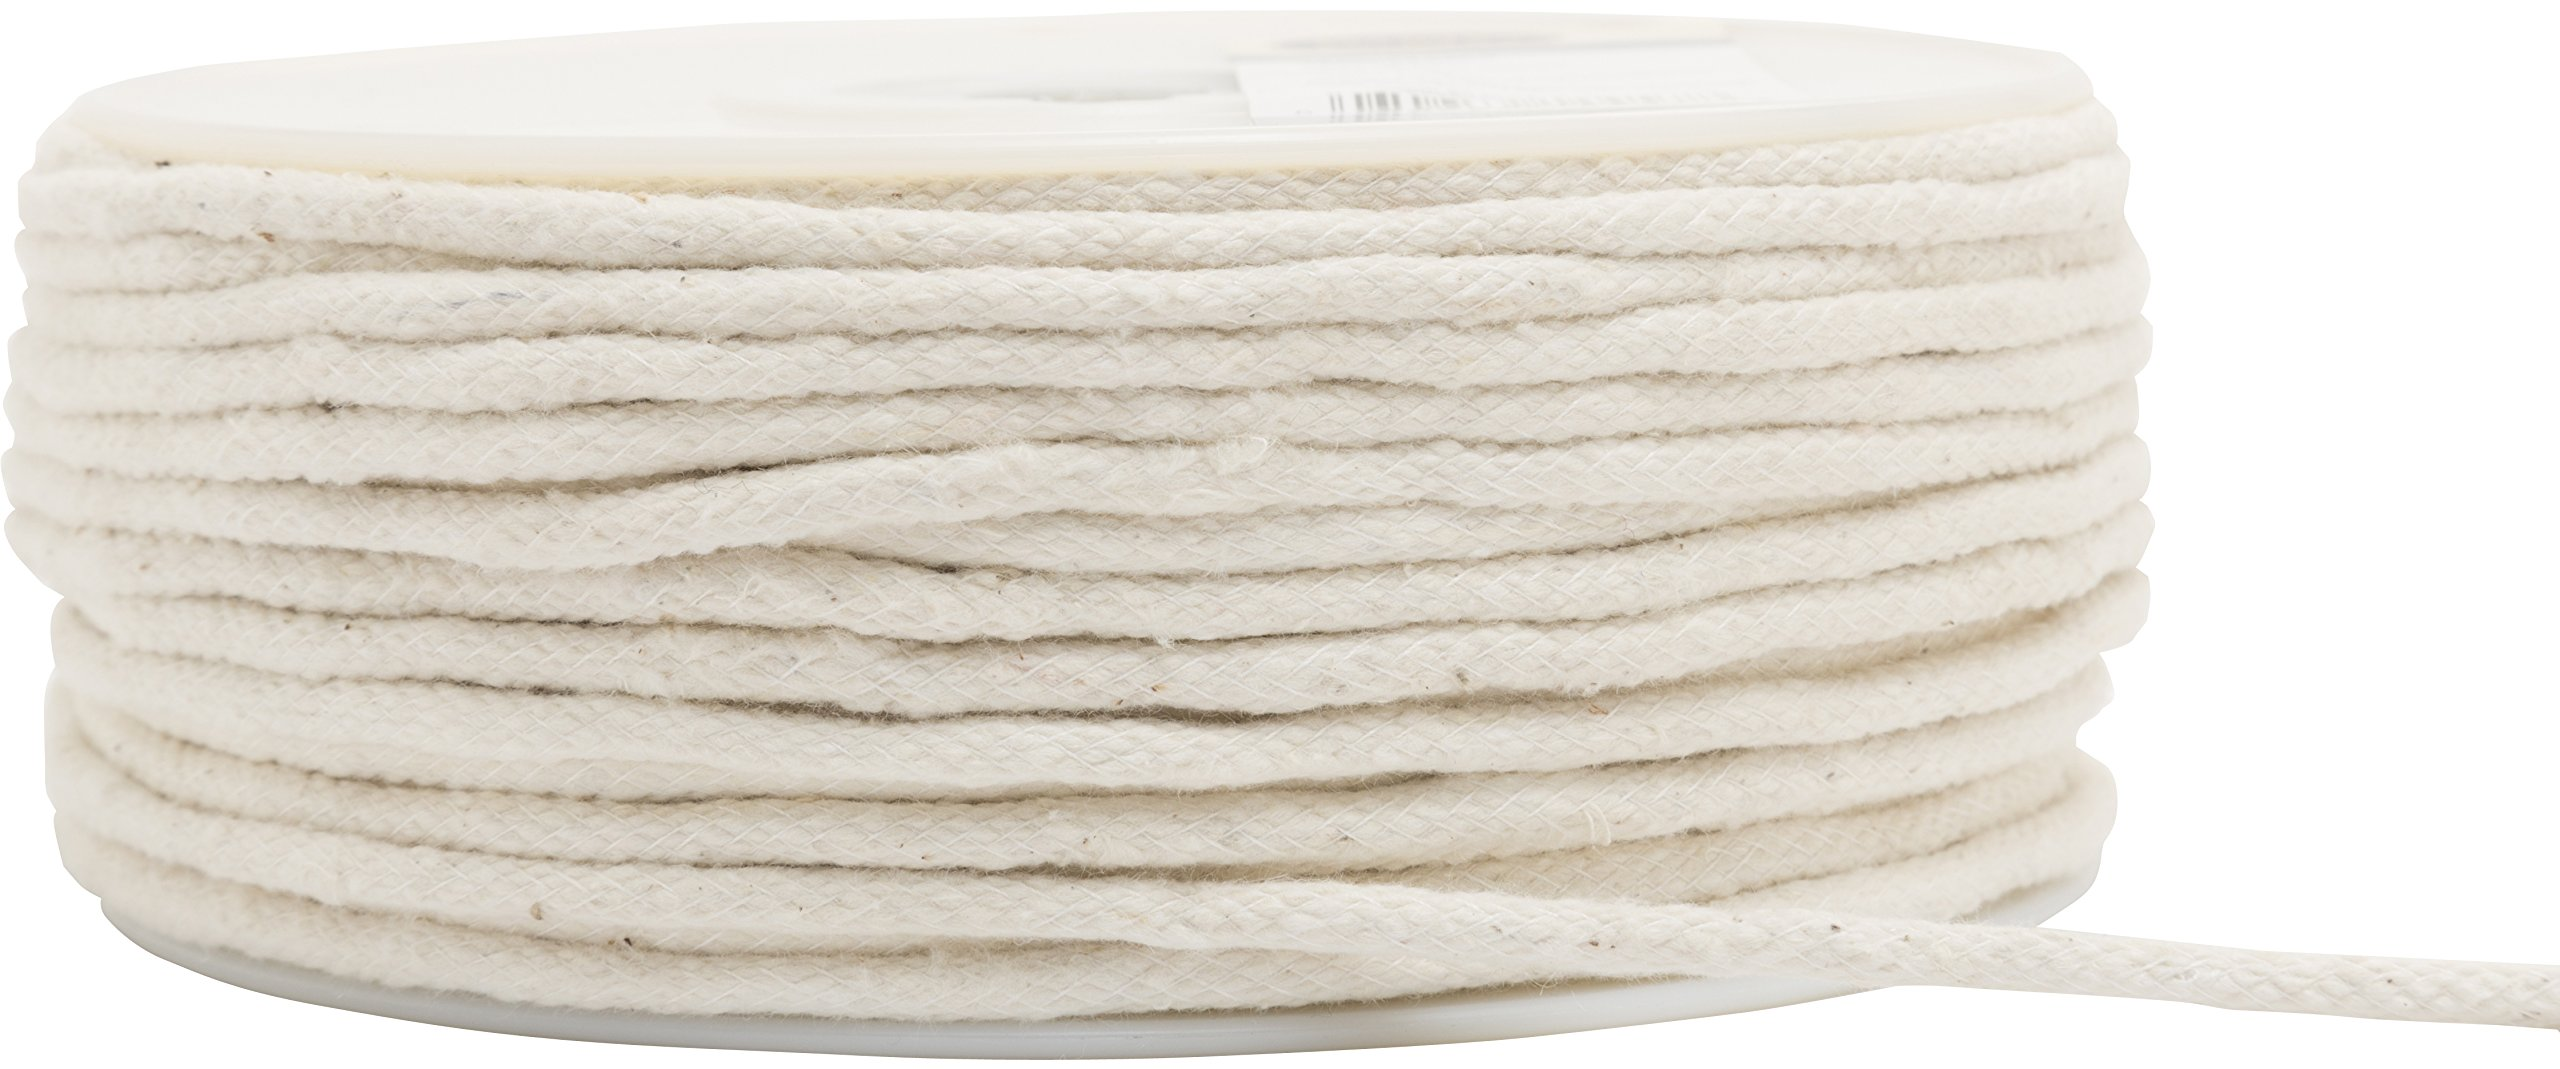 """Wrights Cotton Piping Size 1 3/16""""X50yd, Natural"""